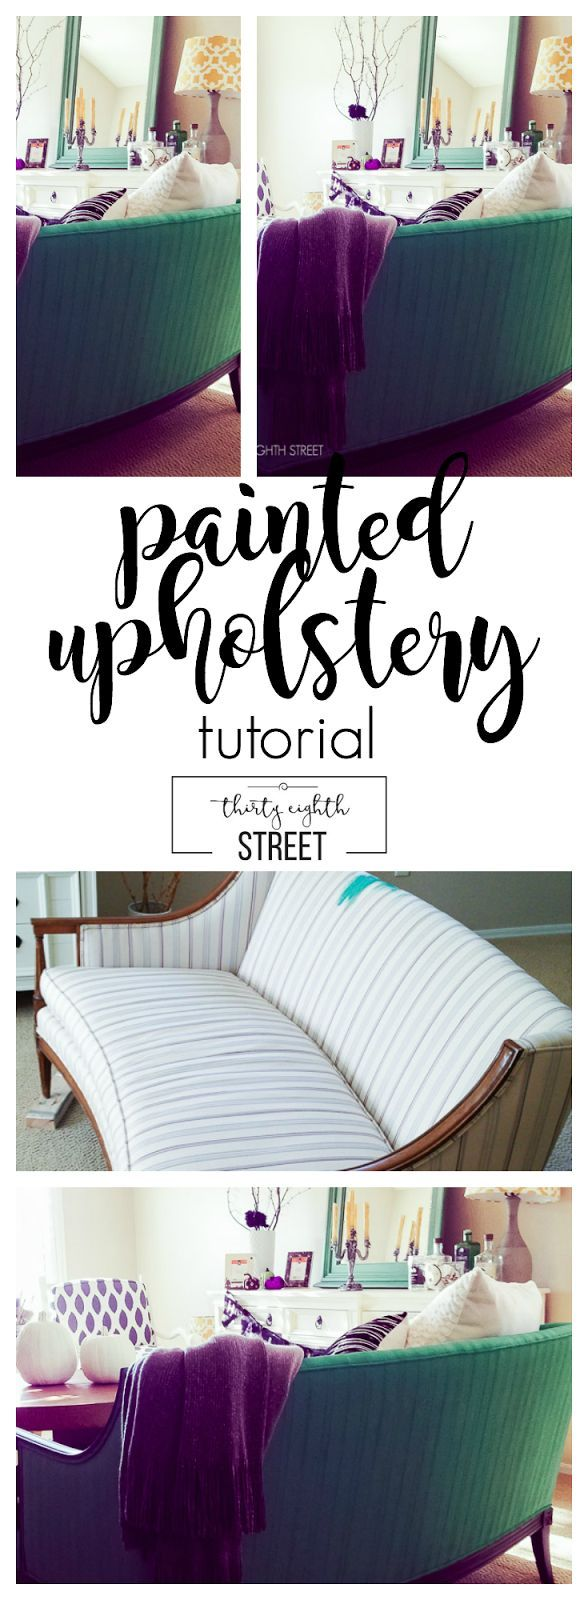 Best 25+ Paint upholstery ideas on Pinterest | Painted couch ...